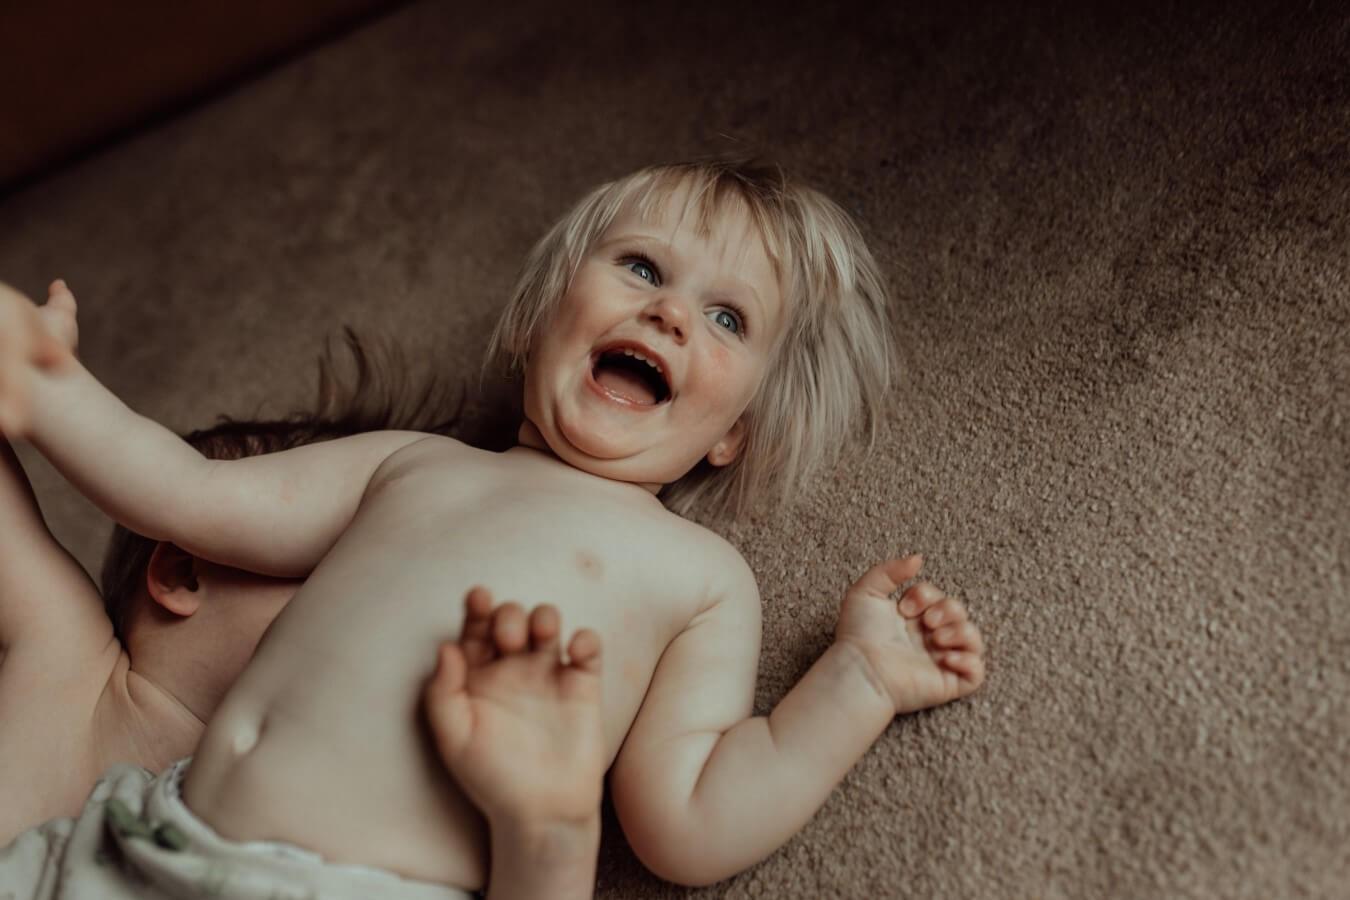 Toddler lies with her brother on the carpet during Melbourne's lockdown. She has blond hair and is laughing